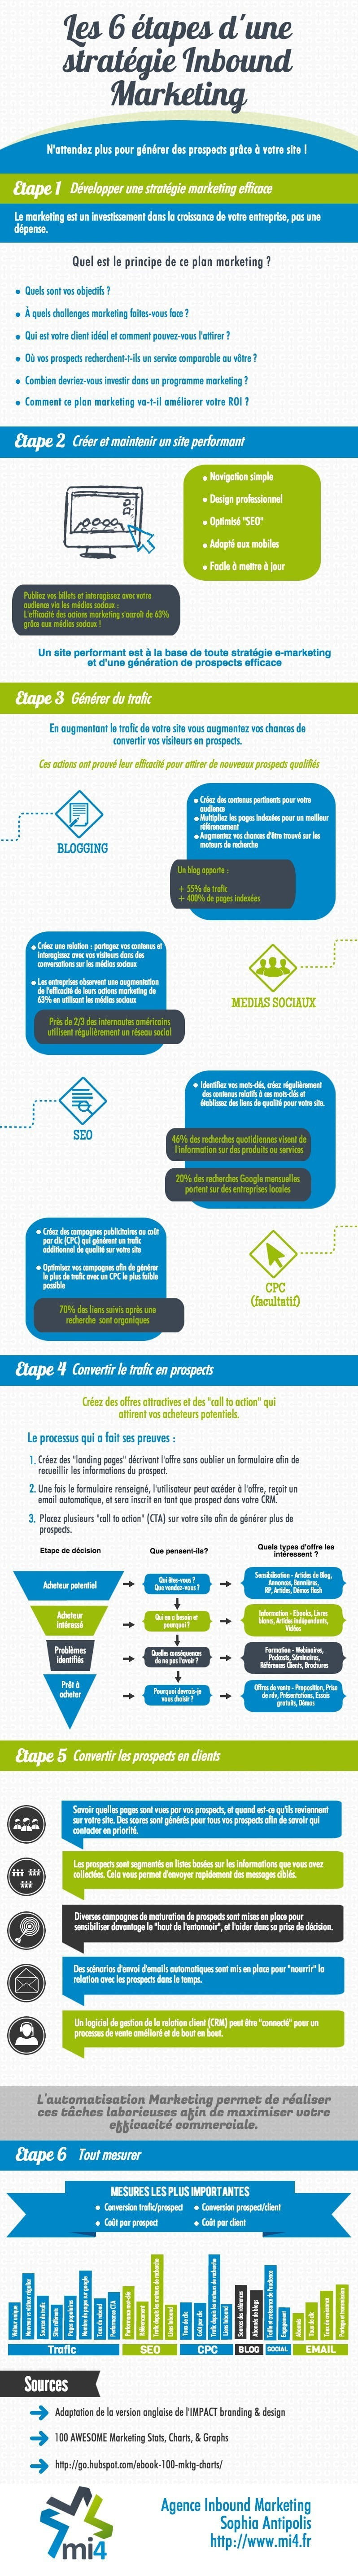 etapes Inbound Marketing infographie